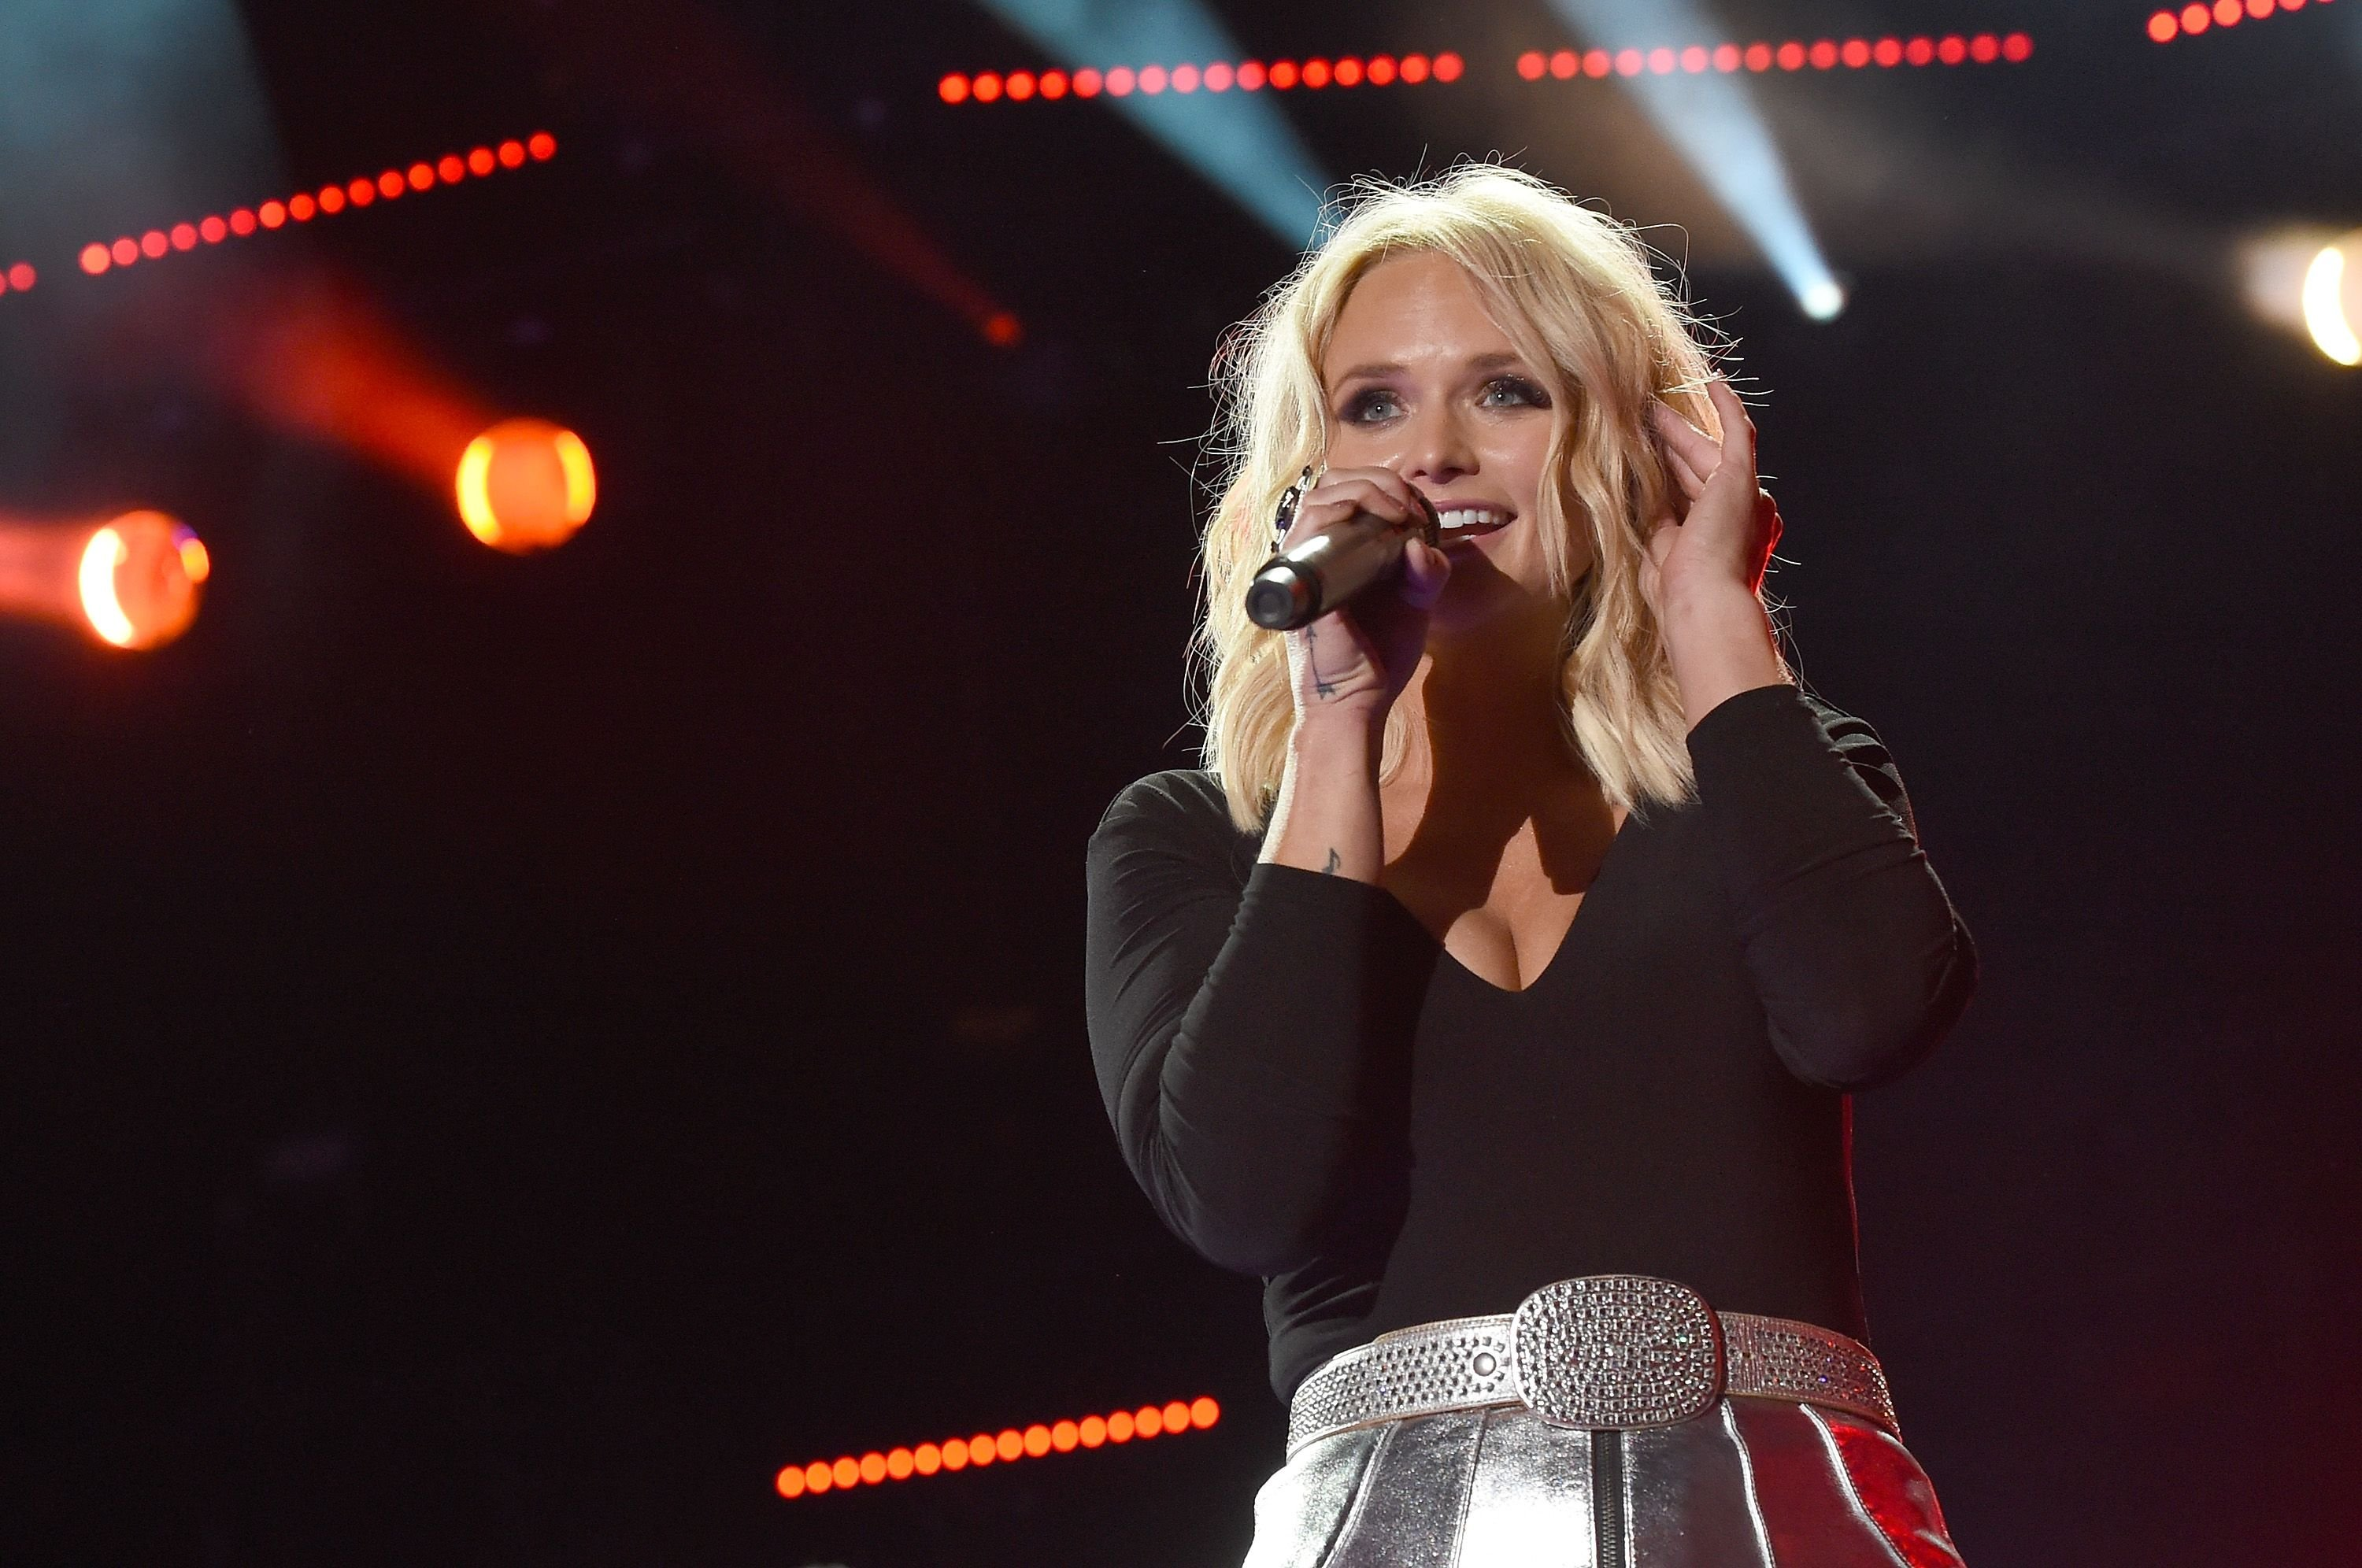 Miranda Lambert at the 2016 CMA Festival - Day 1 at Nissan Stadium on June 9, 2016 in Nashville, Tennessee | Photo: Getty Images